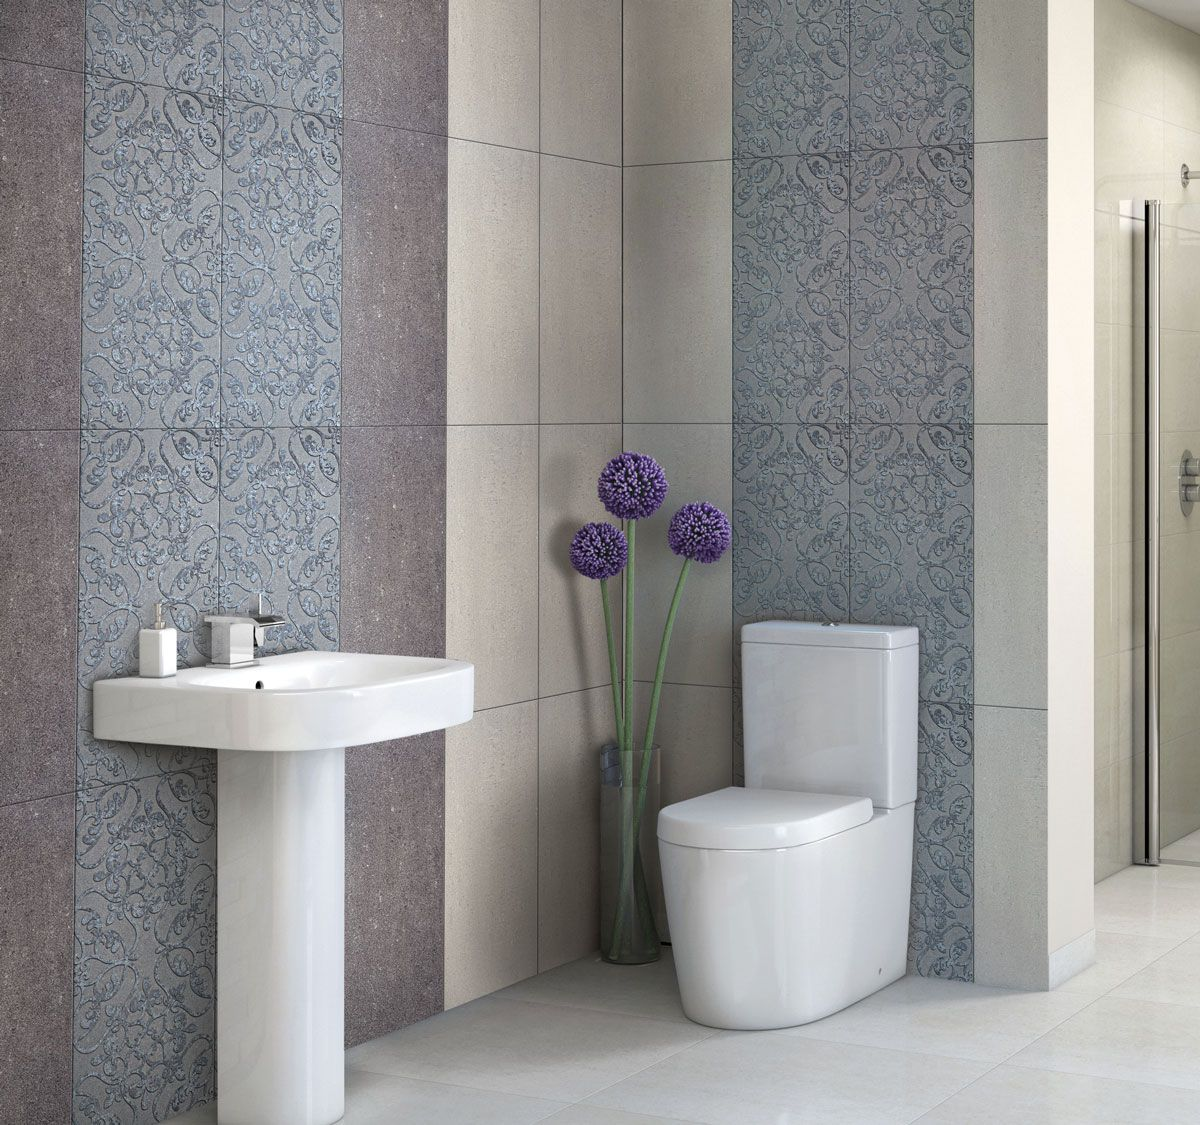 buy designer floor, wall #tiles for #bathroom, bedroom, kitchen